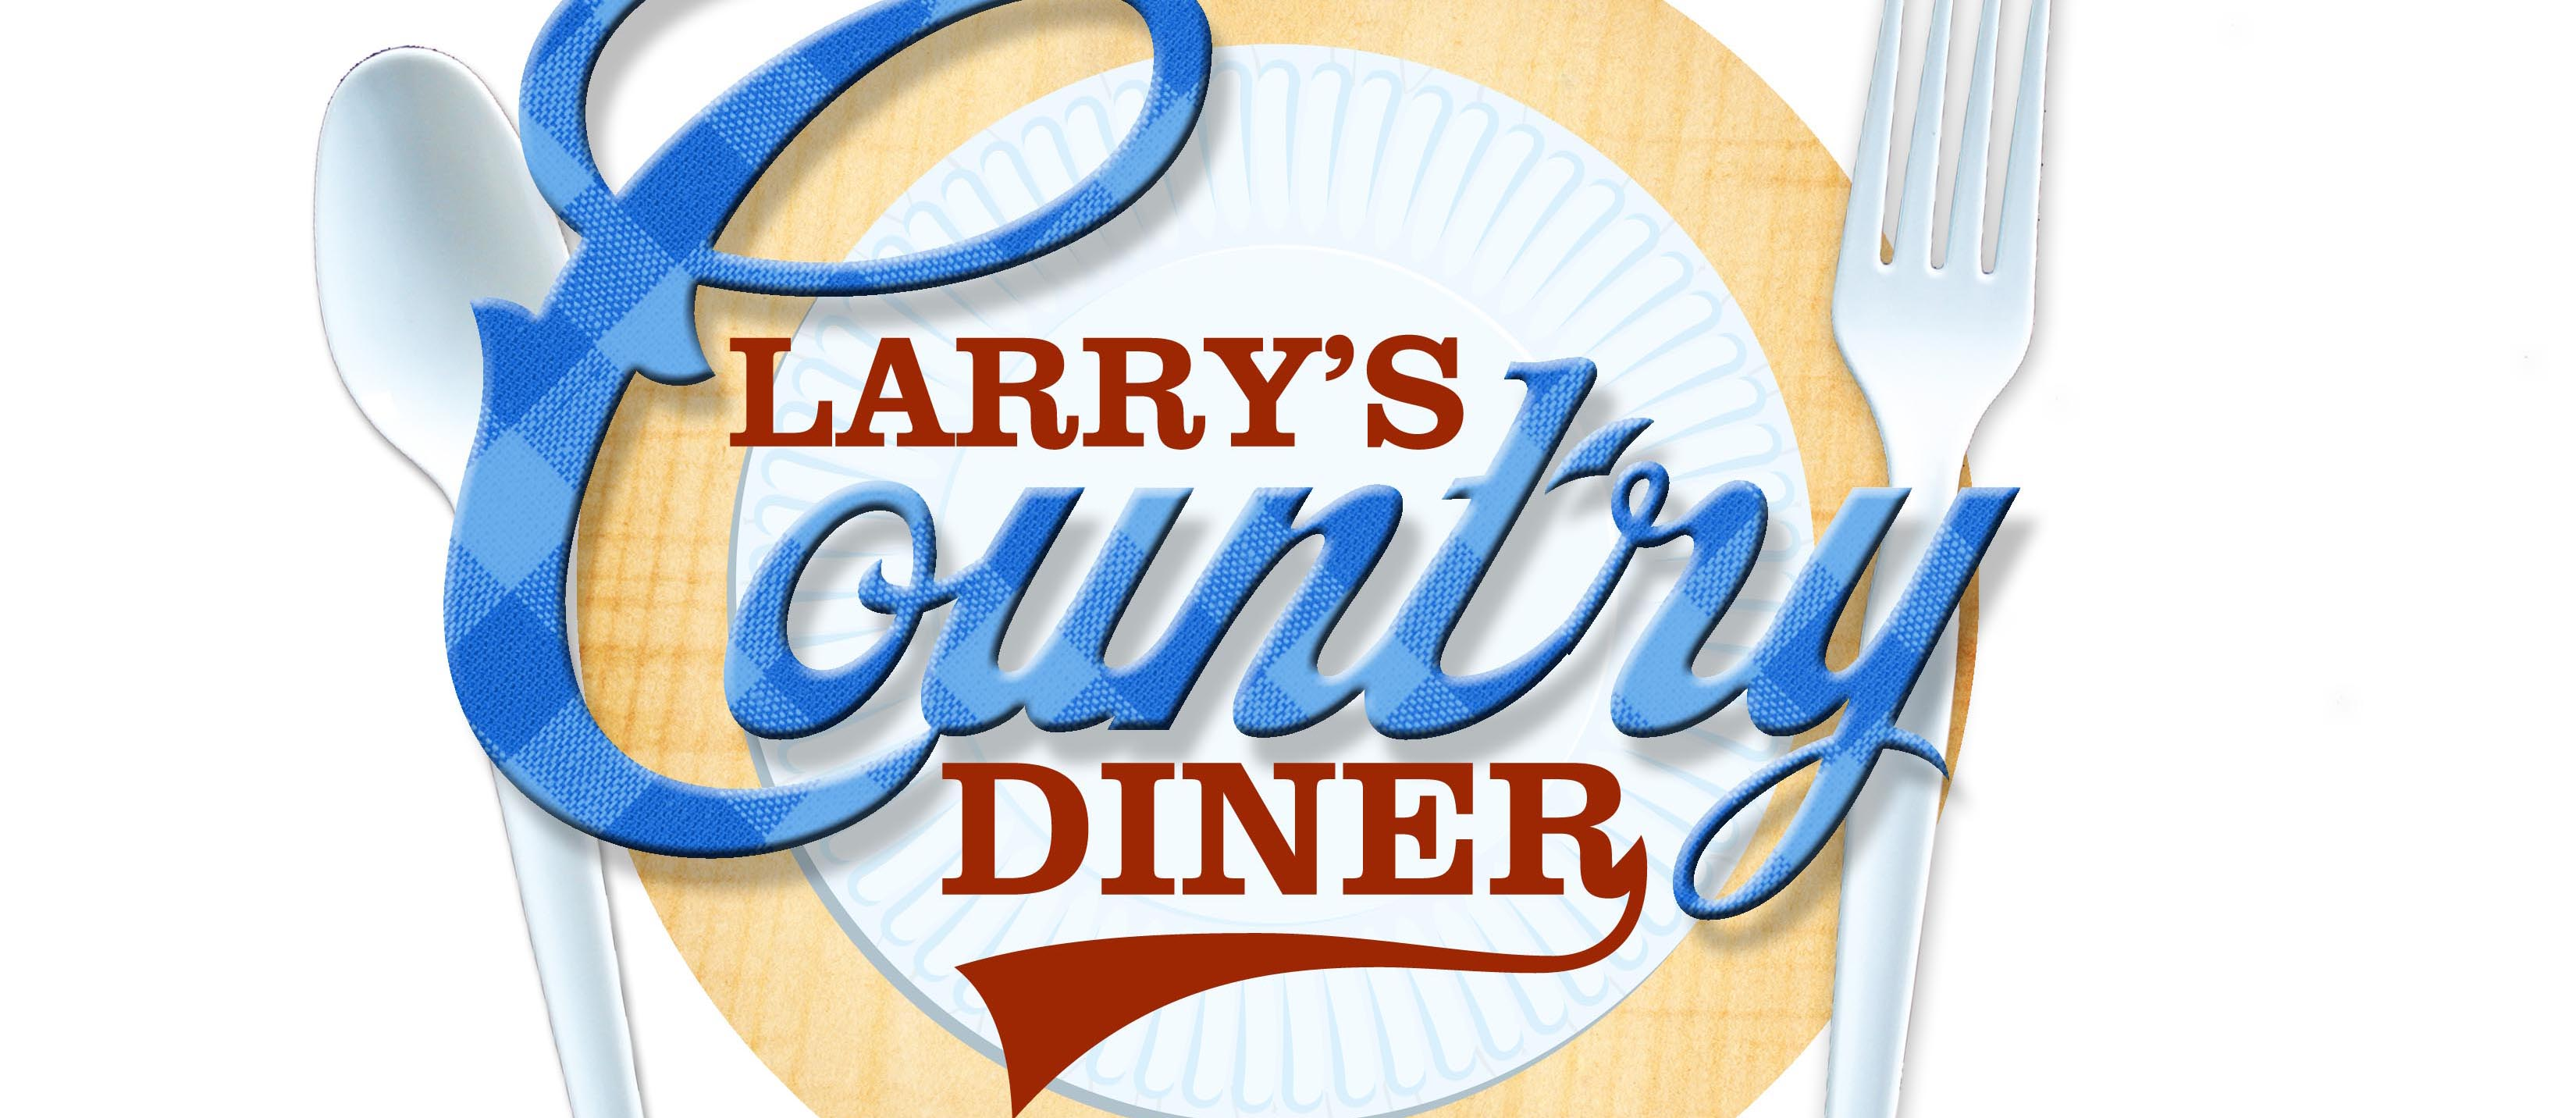 Larry's country diner' to feature guest stars Lorrie Morgan, John.